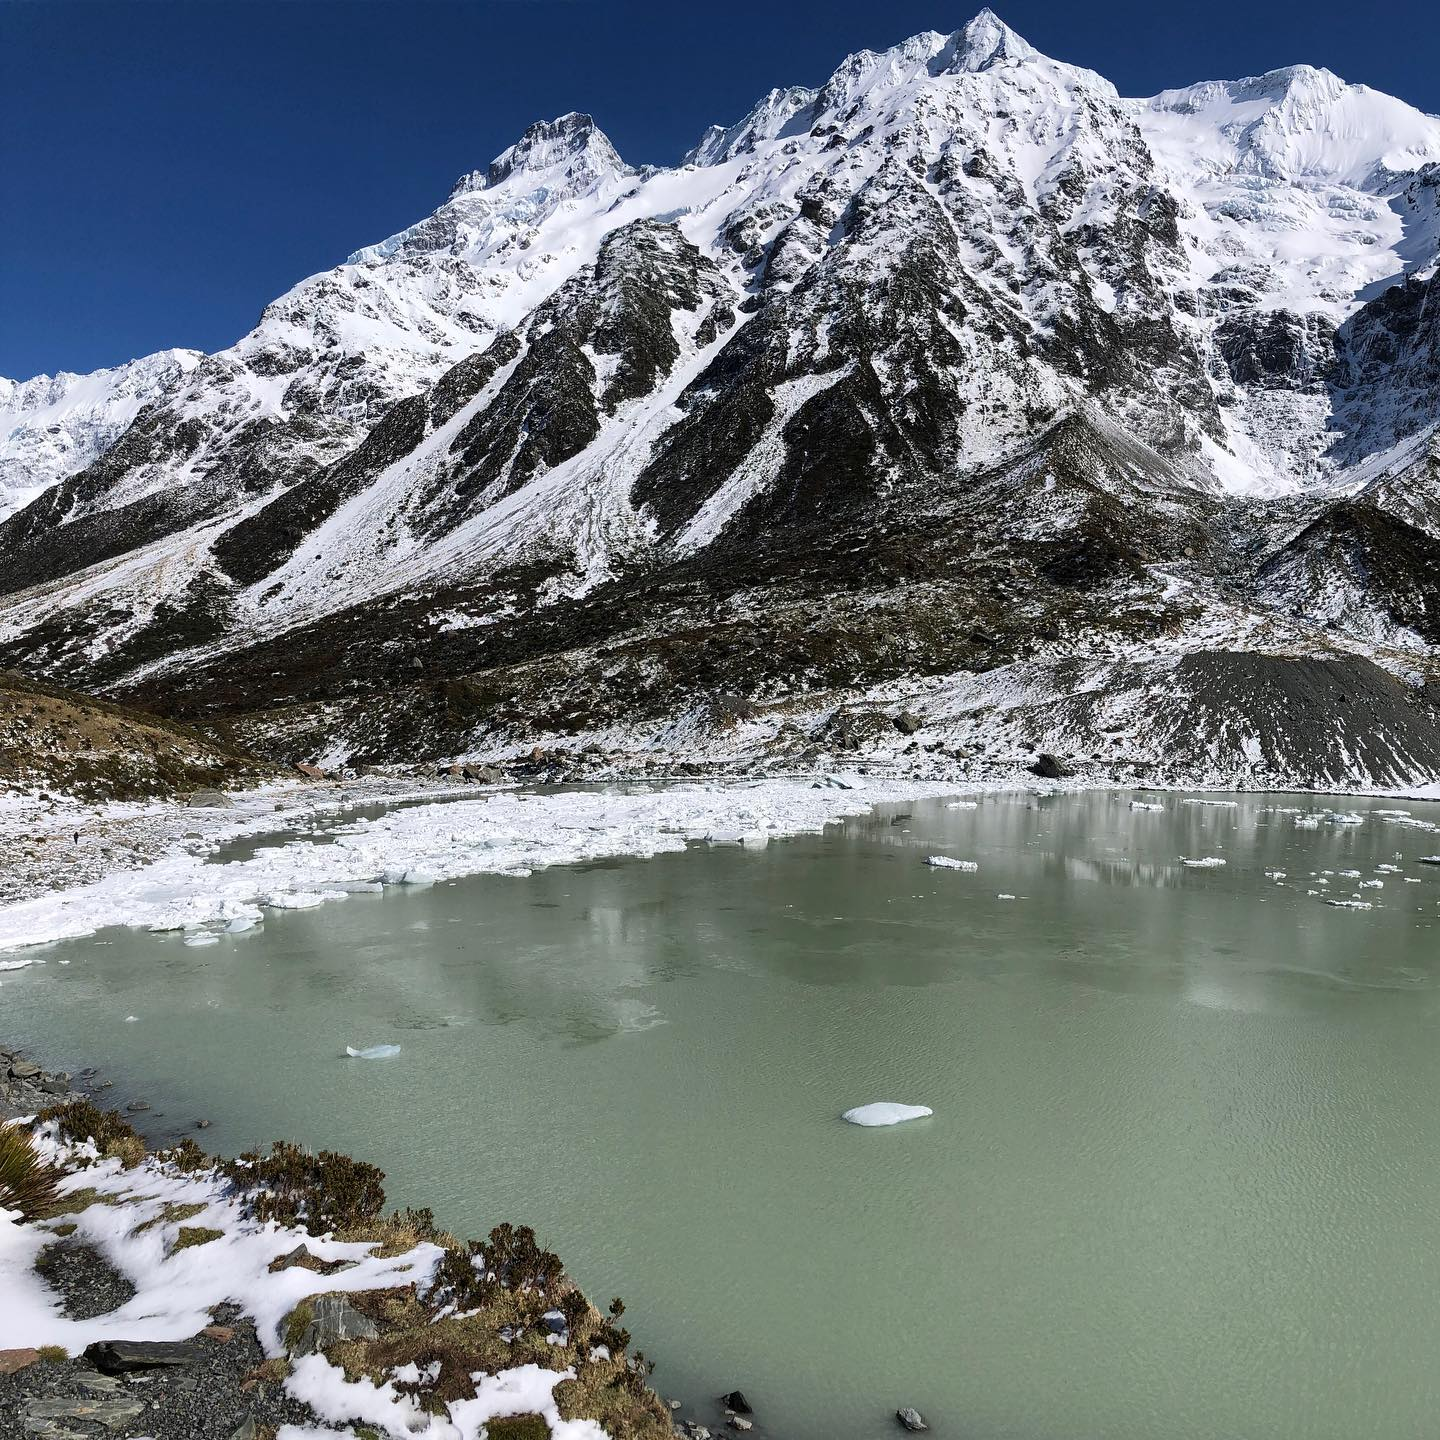 ➡️scroll to see full picture   #mountcook #lake #snow #ice #mountain #mountains #peaceful #shotoniphone #gurushots